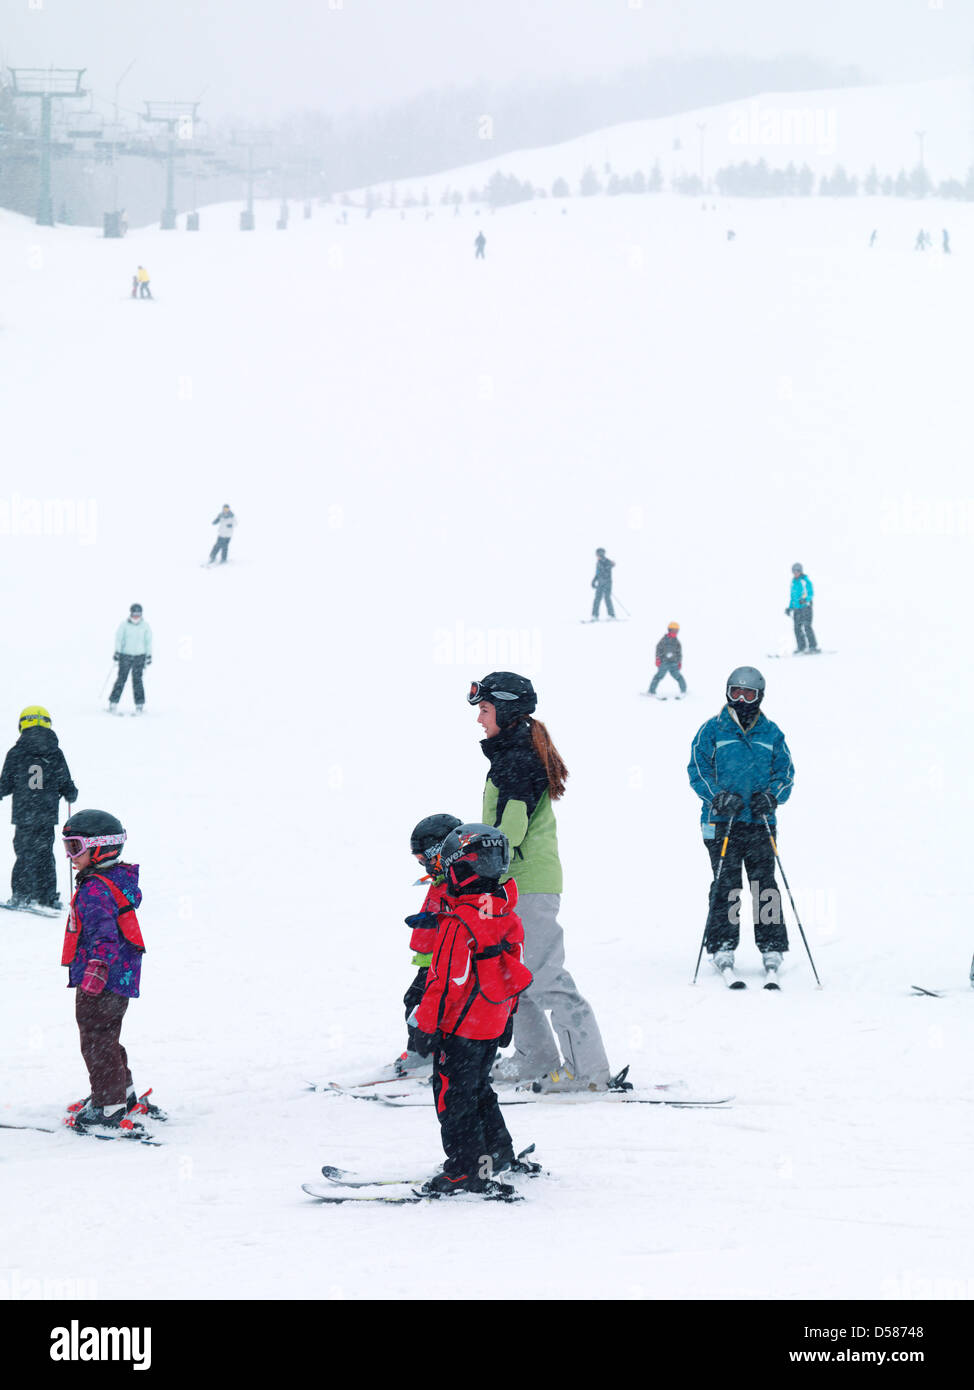 Children and adults skiing at Blue Mountain, Collingwood, Ontario, Canada alpine ski resort. - Stock Image